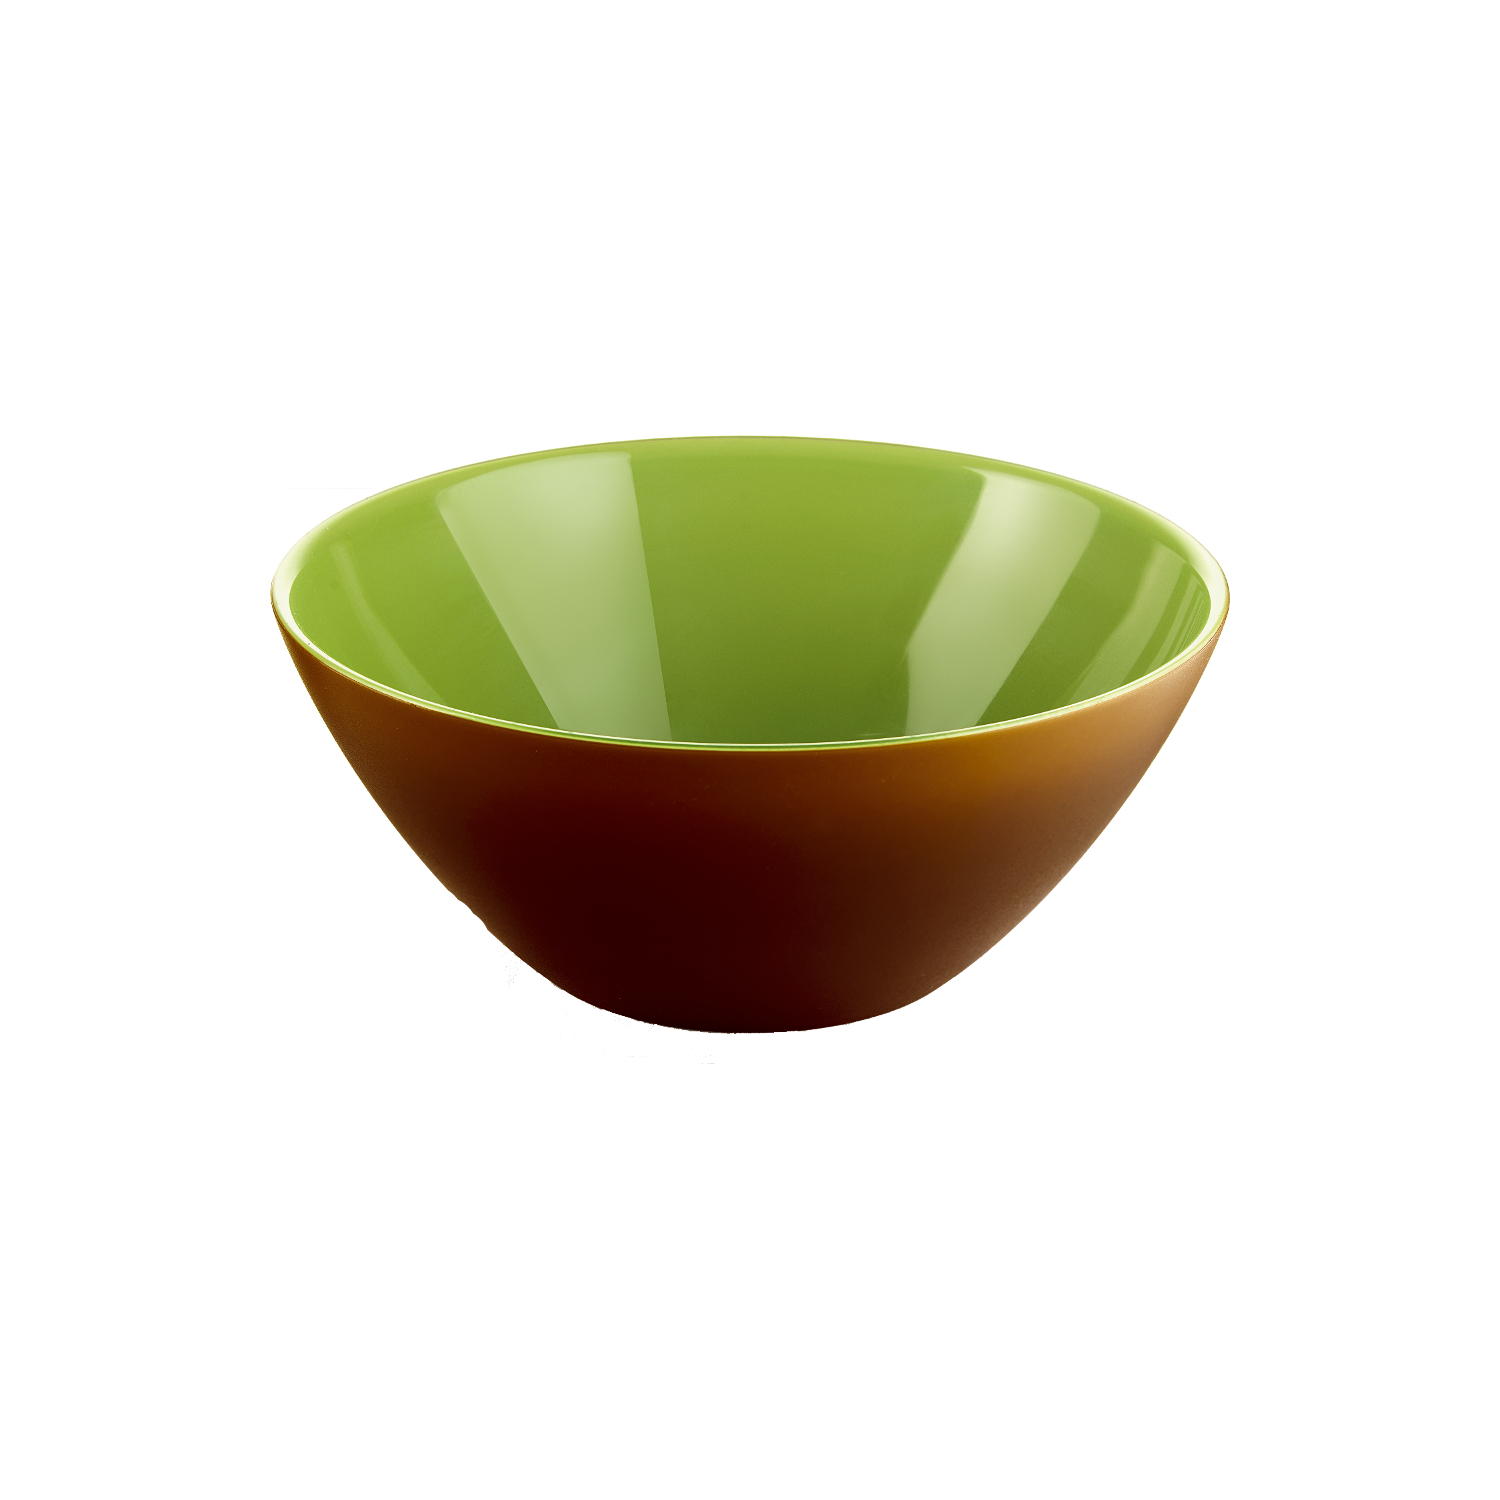 Guzzini My Fusion Kiwi Green and Brown Acrylic 9.8 Inch Bowl